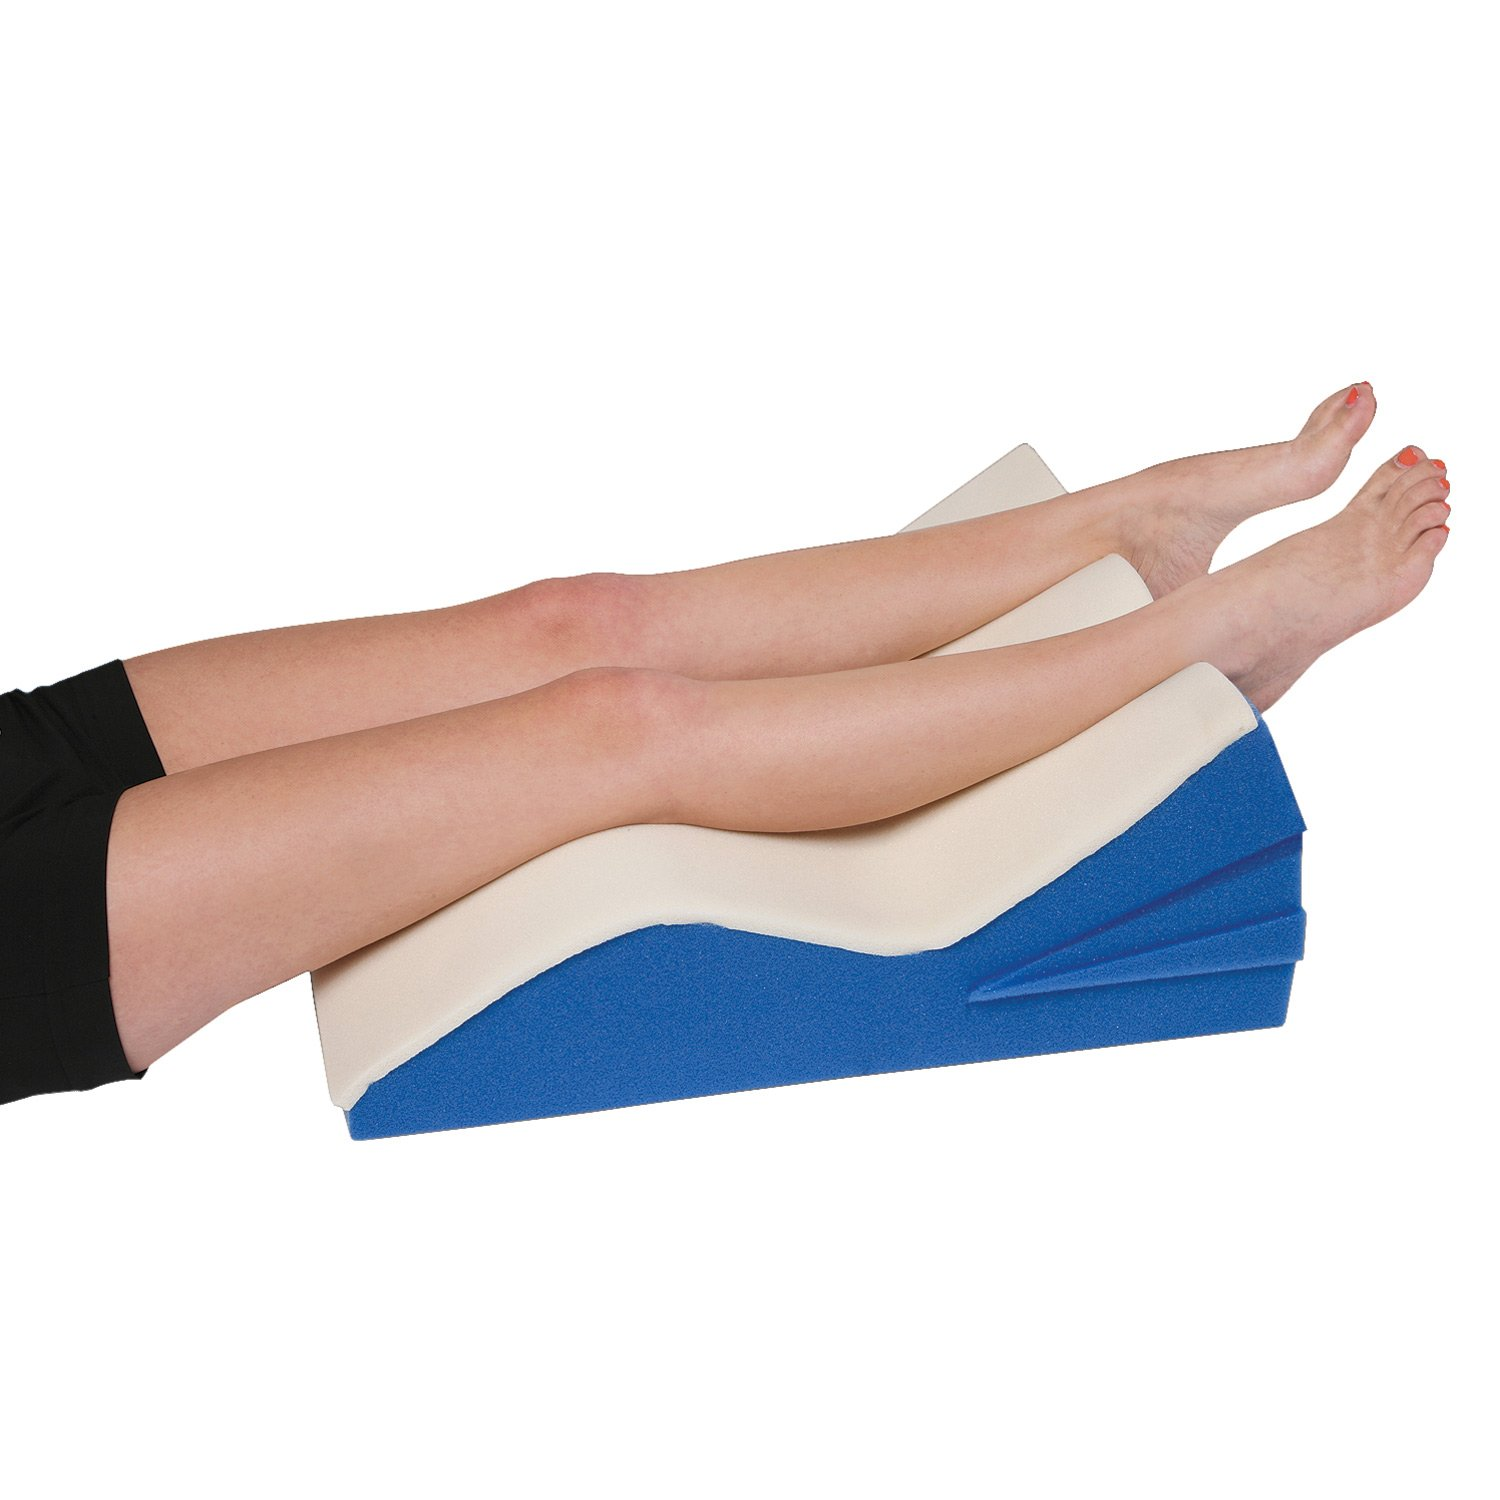 Adjustable Leg Lifter Cushion with Cover - Wedge Pillow